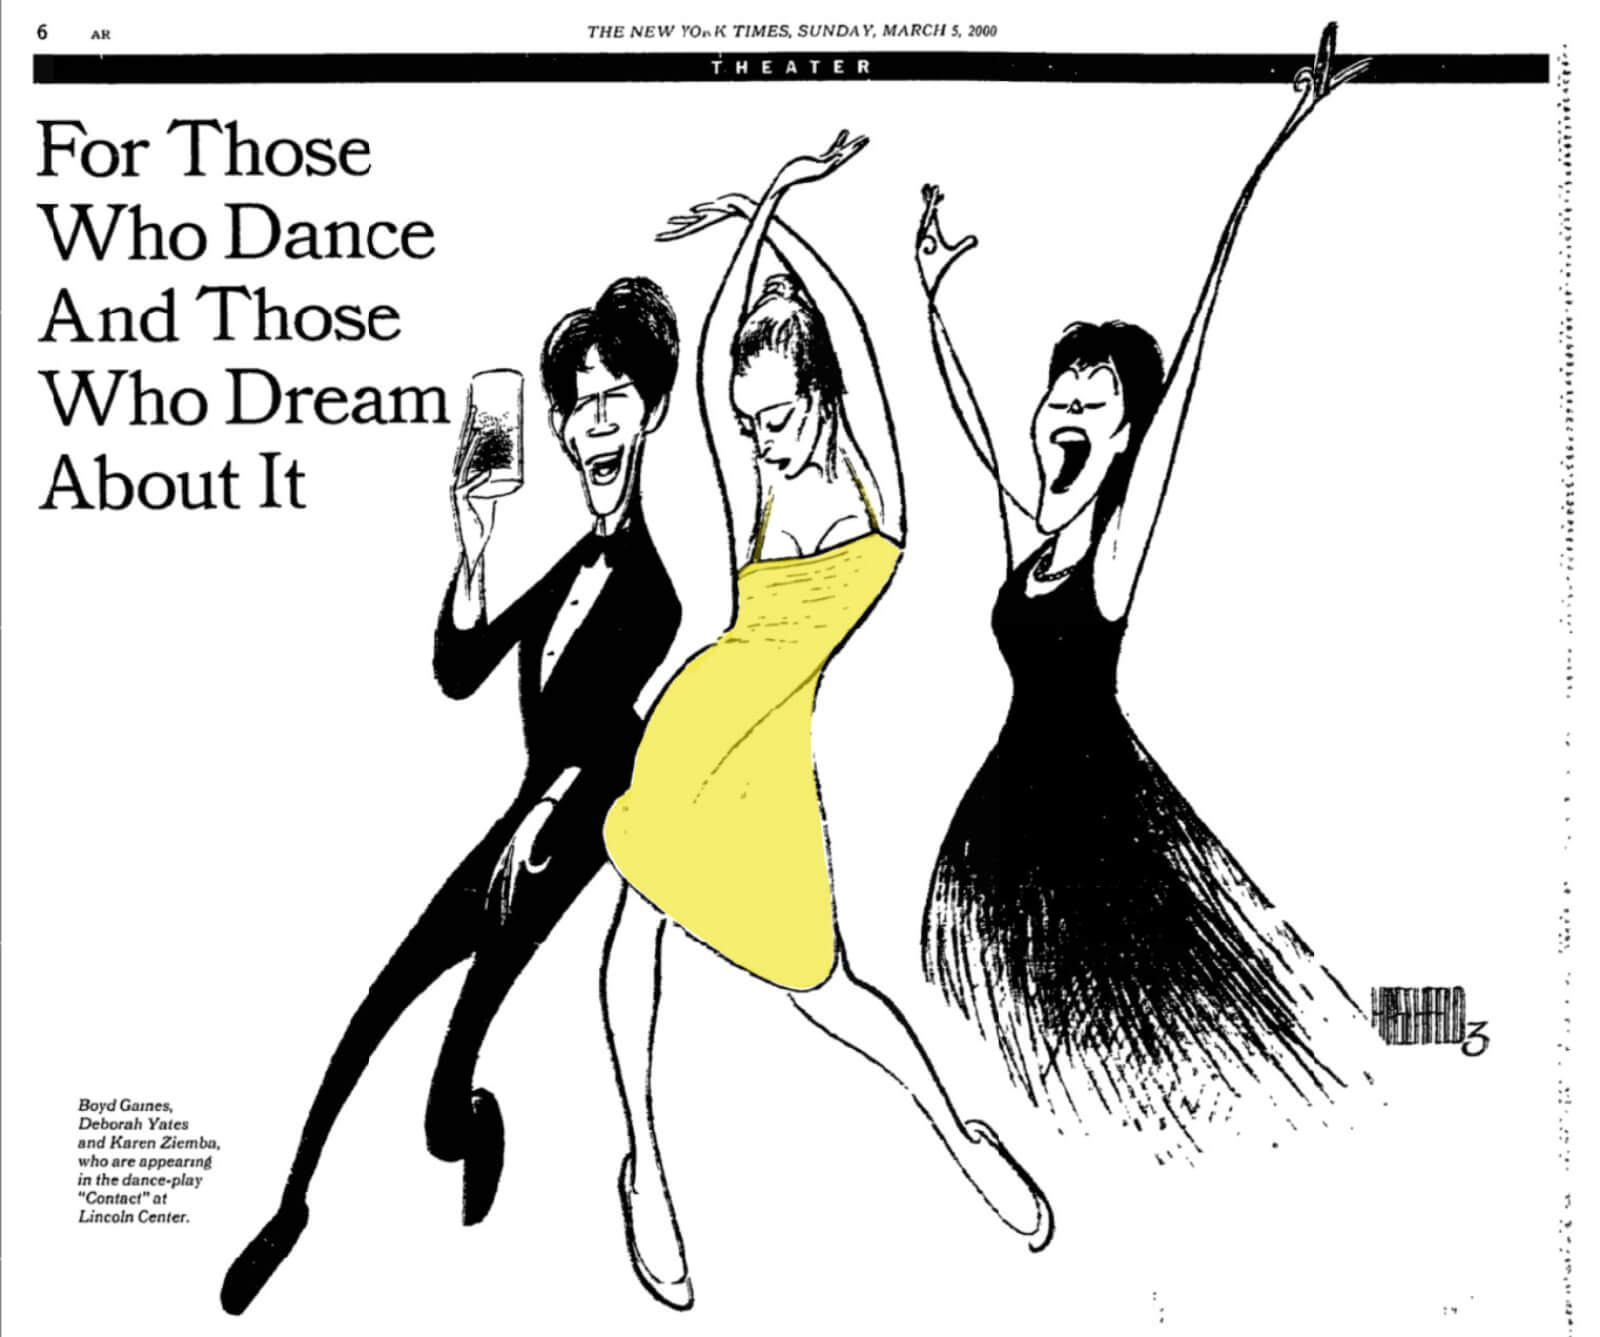 New York Times illustration by Al Hirschfeld published March 5th, 2000 depicting Michael Wiley (Boyd Gaines), Girl in a Yellow Dress (Deborah Yates), and Wife (Karen Ziemba) in Contact